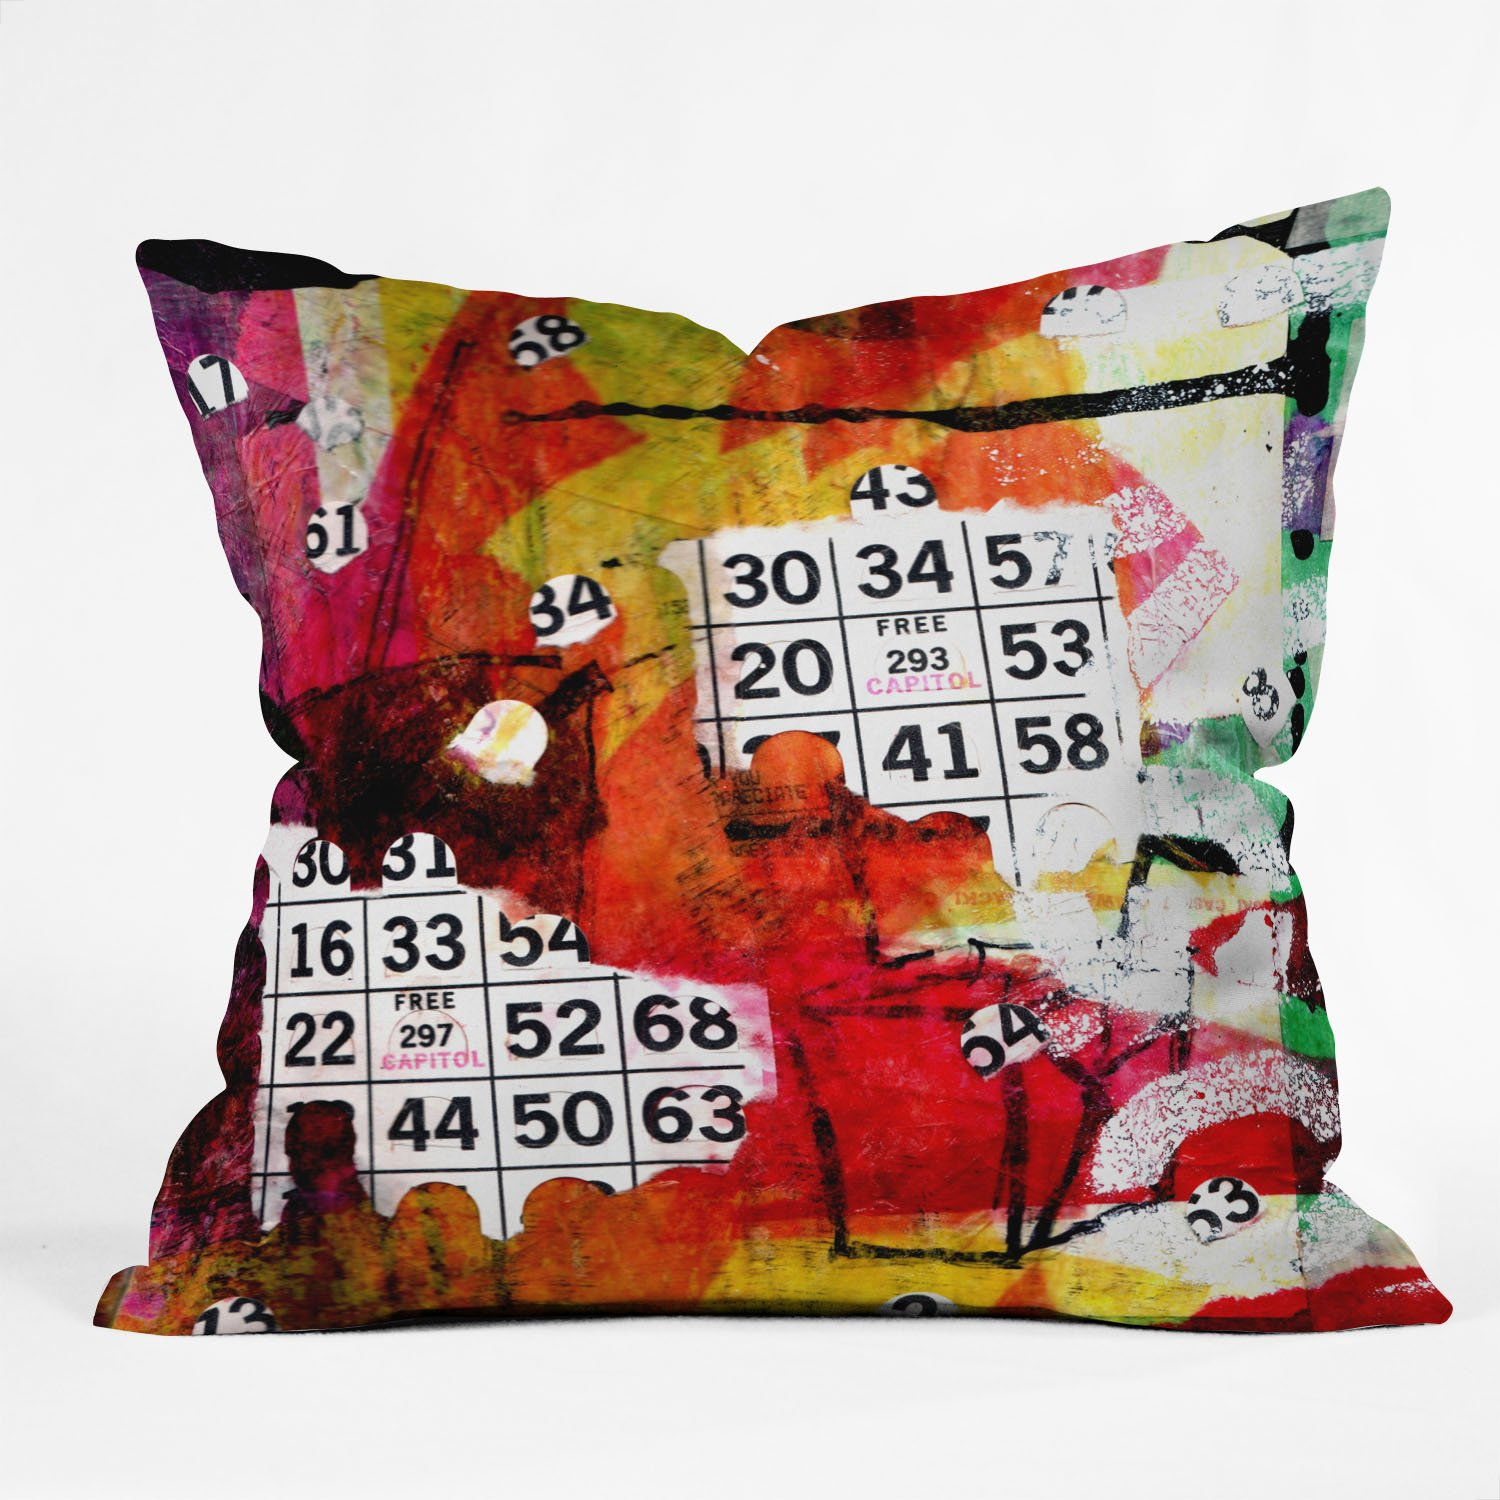 Deny Designs Sophia Buddenhagen Bright Bingo 2 Throw Pillow, 26 x 26 by Deny Designs